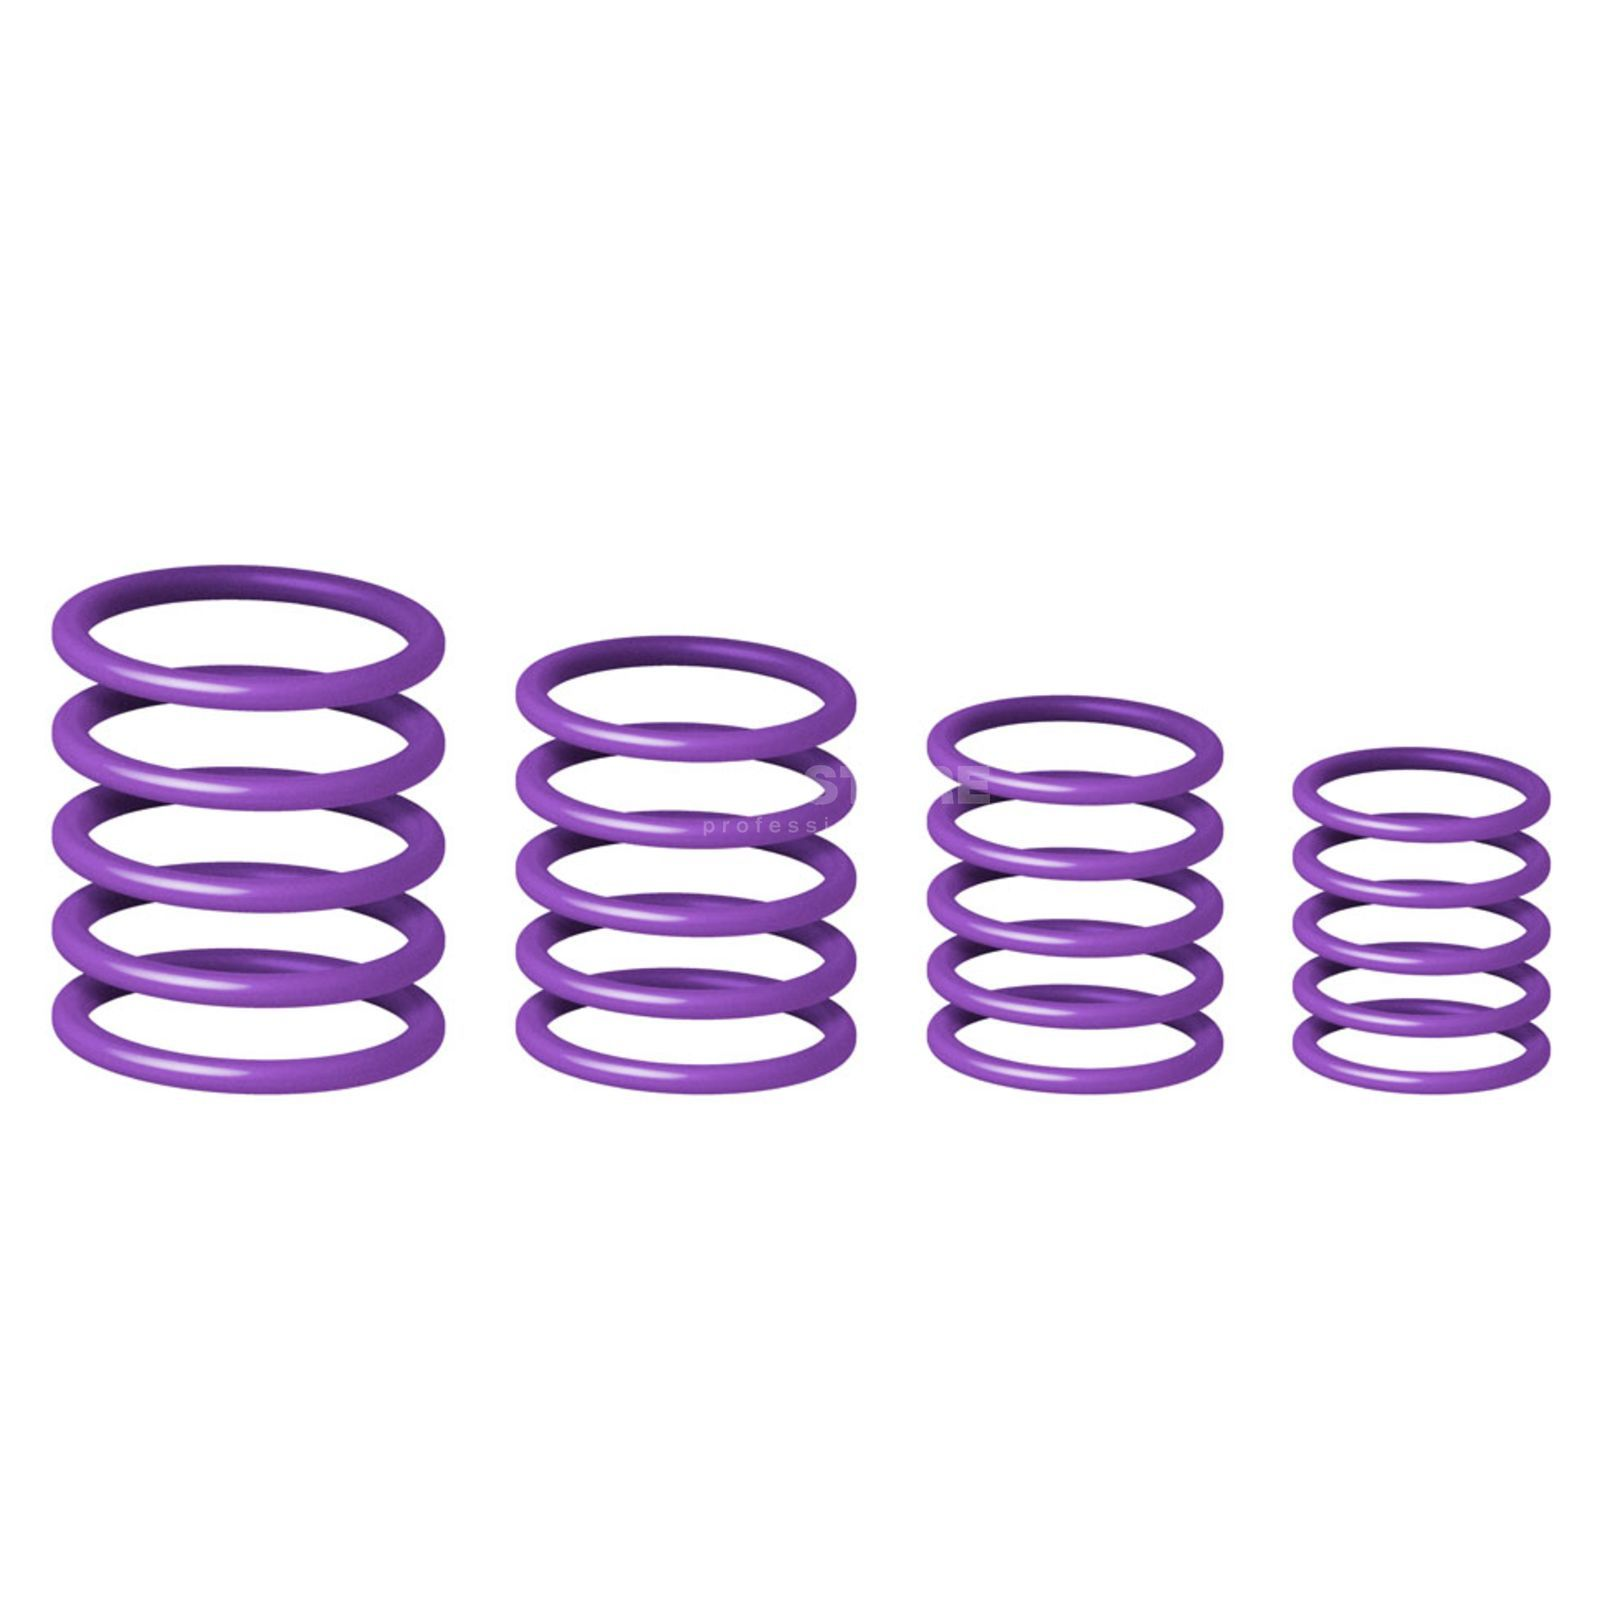 Gravity RP 5555 PPL 1 Gravity Ring Pack, Power Purple Produktbillede